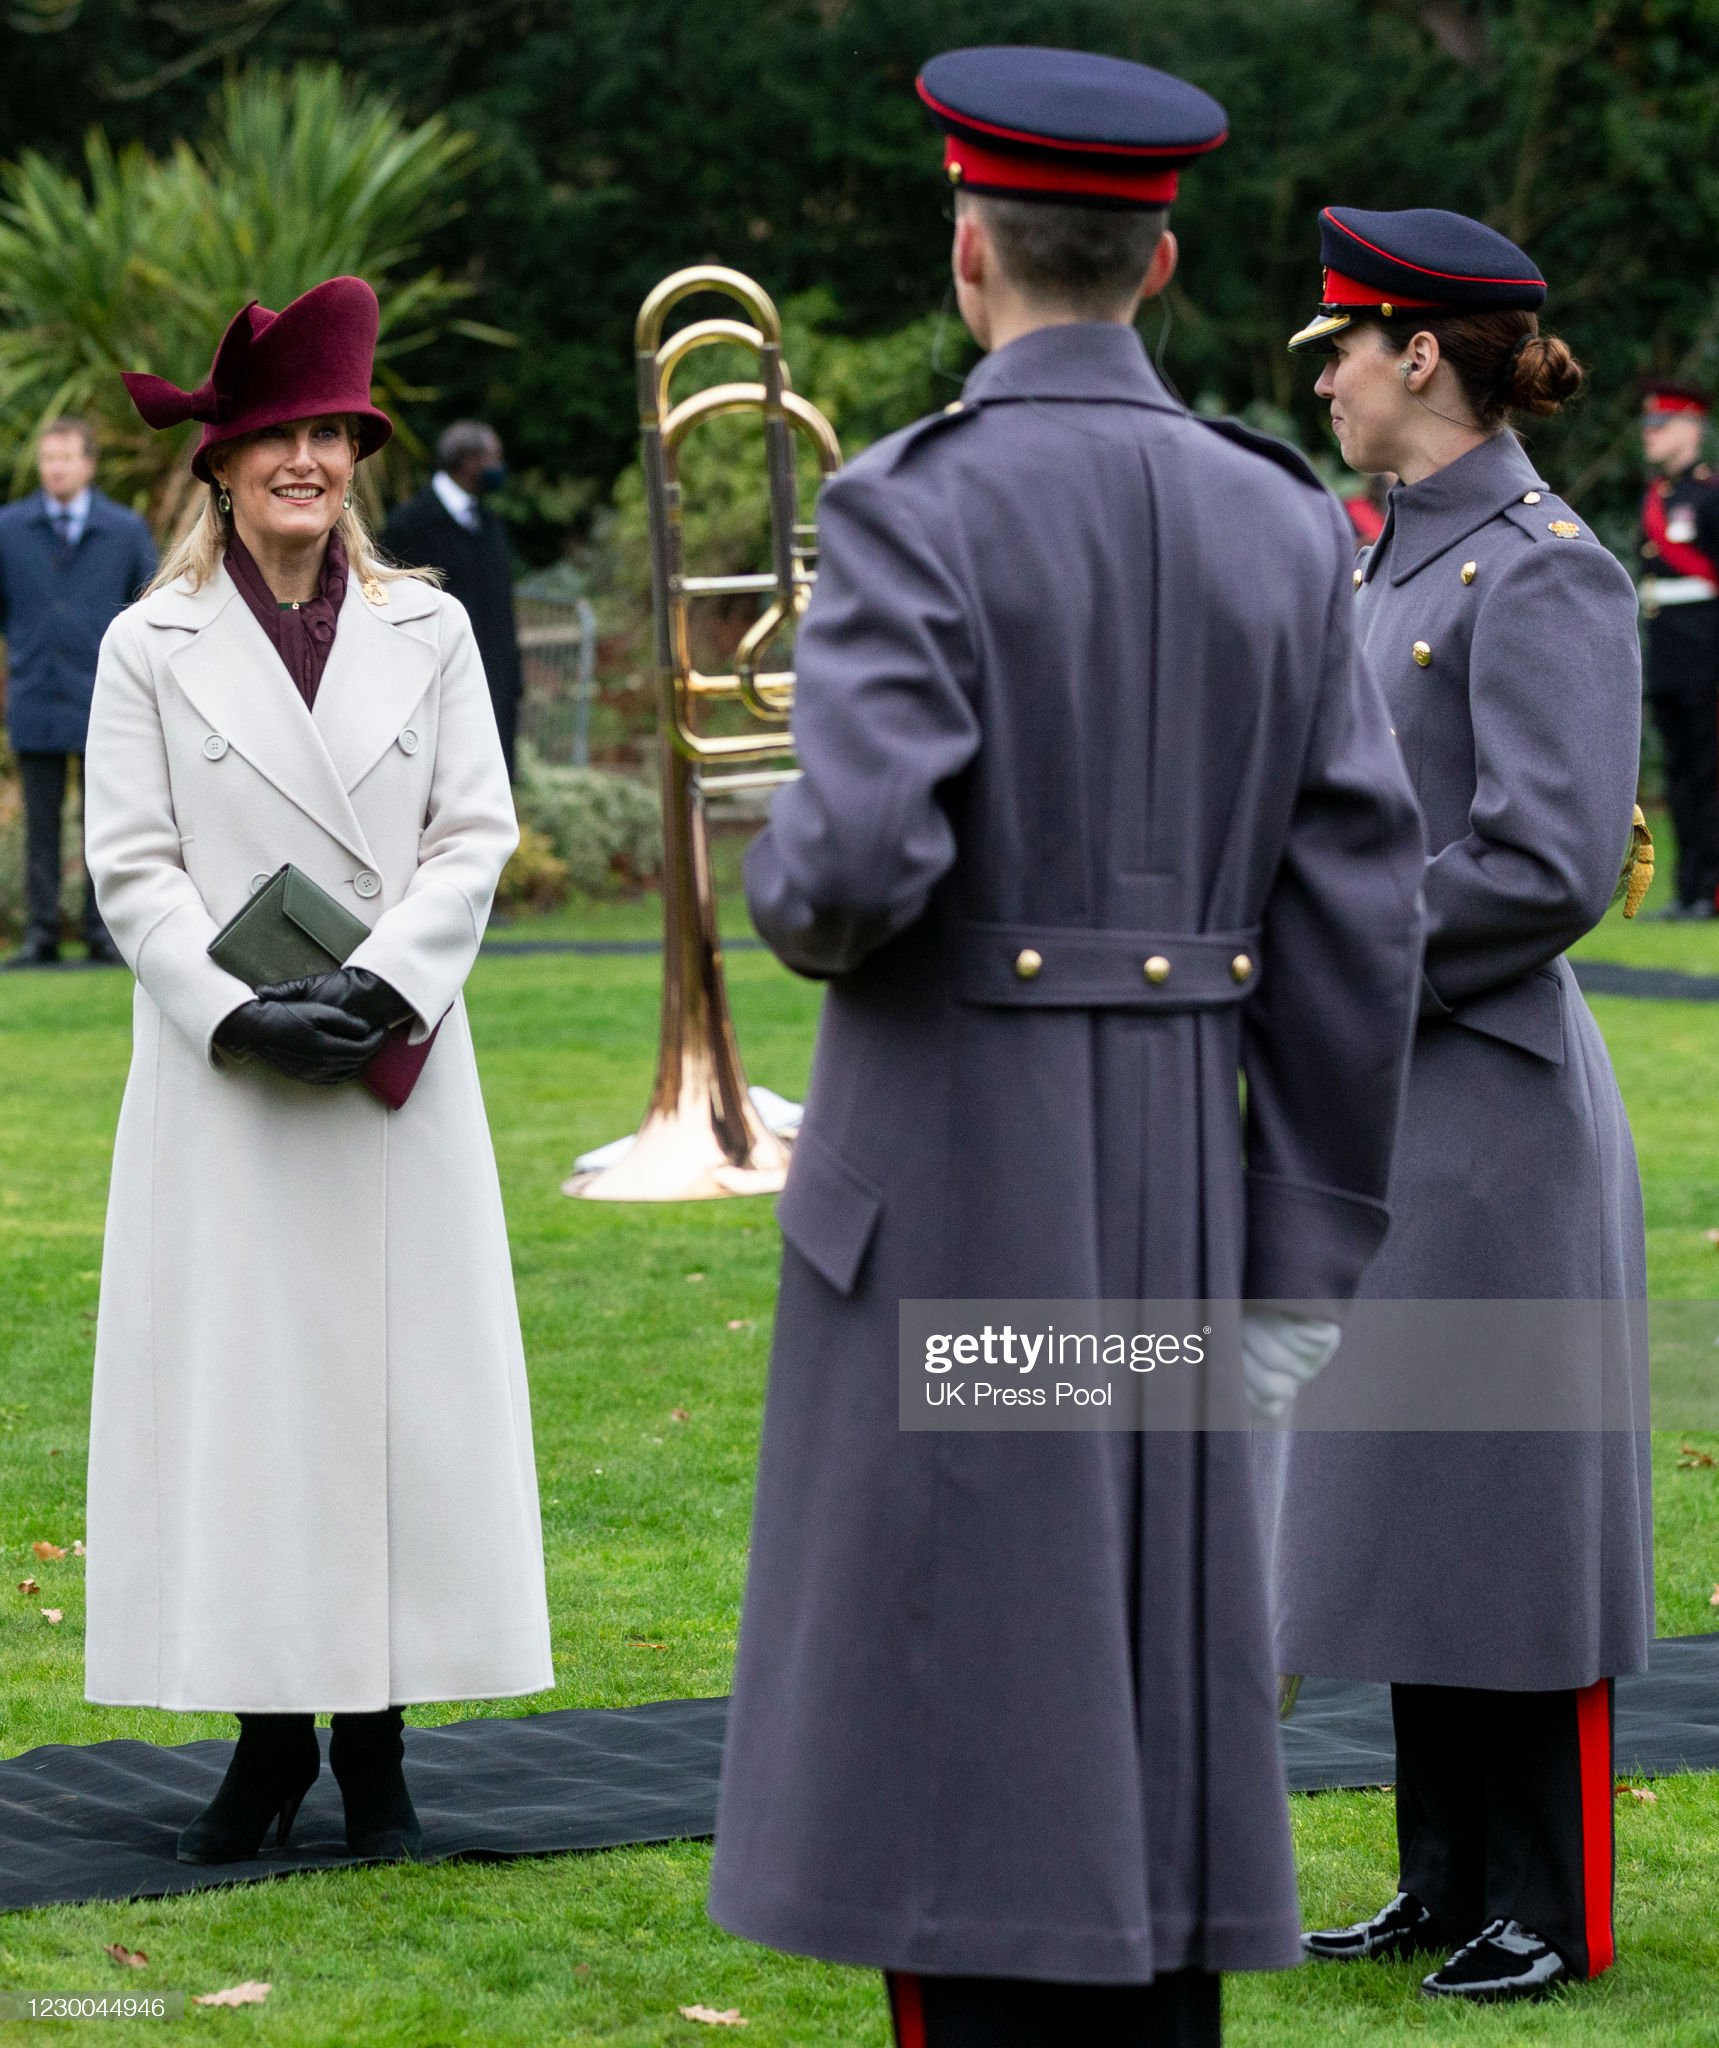 https://media.gettyimages.com/photos/sophie-countess-of-wessex-visits-the-corps-of-army-music-for-a-and-picture-id1230044946?s=2048x2048